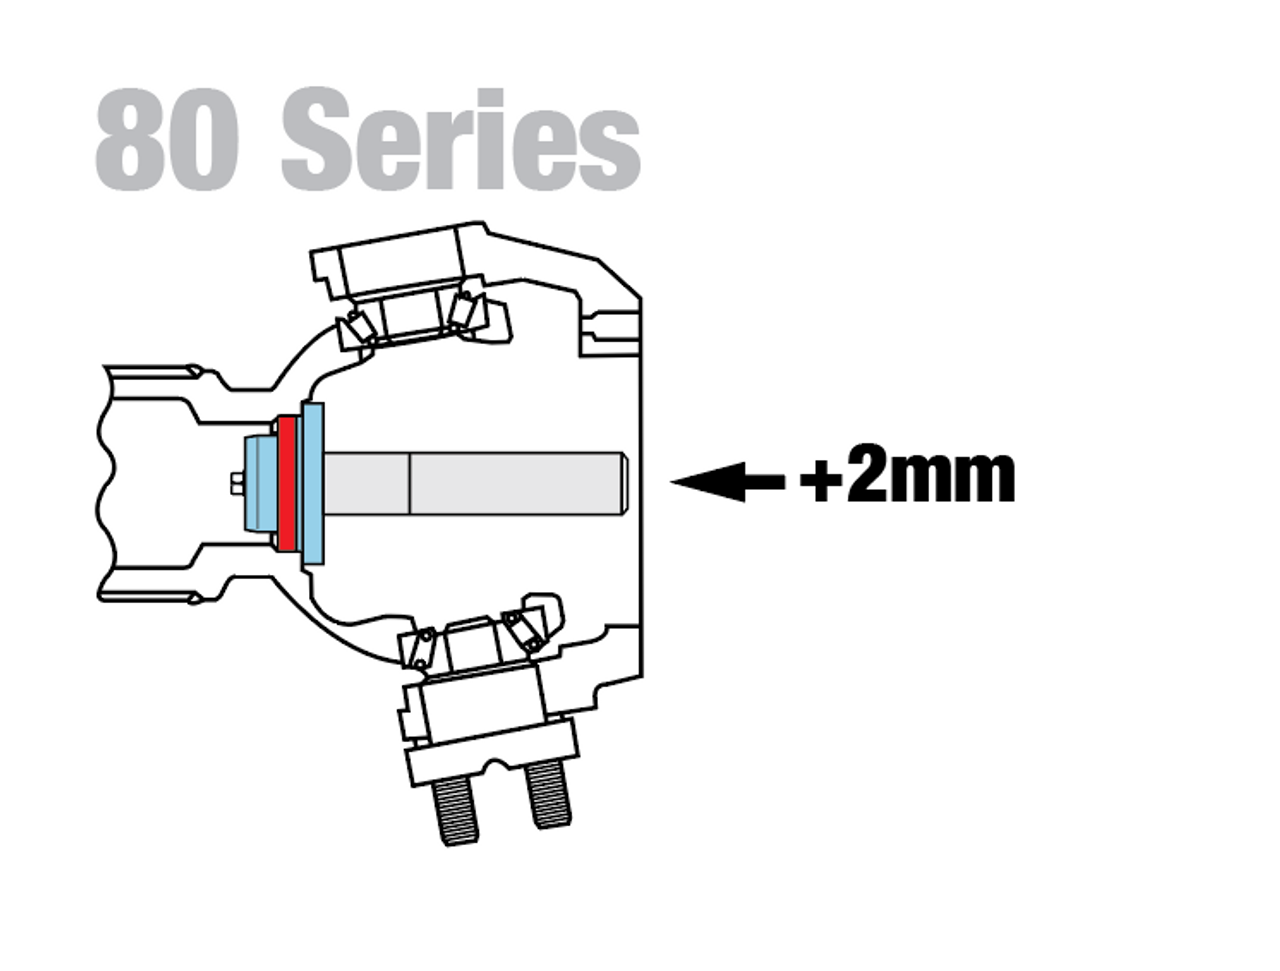 80 Series Inner Axle Seal Offset Driver (ASD-1) The new overdrive tool sets the inner axle seal 2mm INSIDE of the face of the knuckle ball taking it AWAY from the groove.